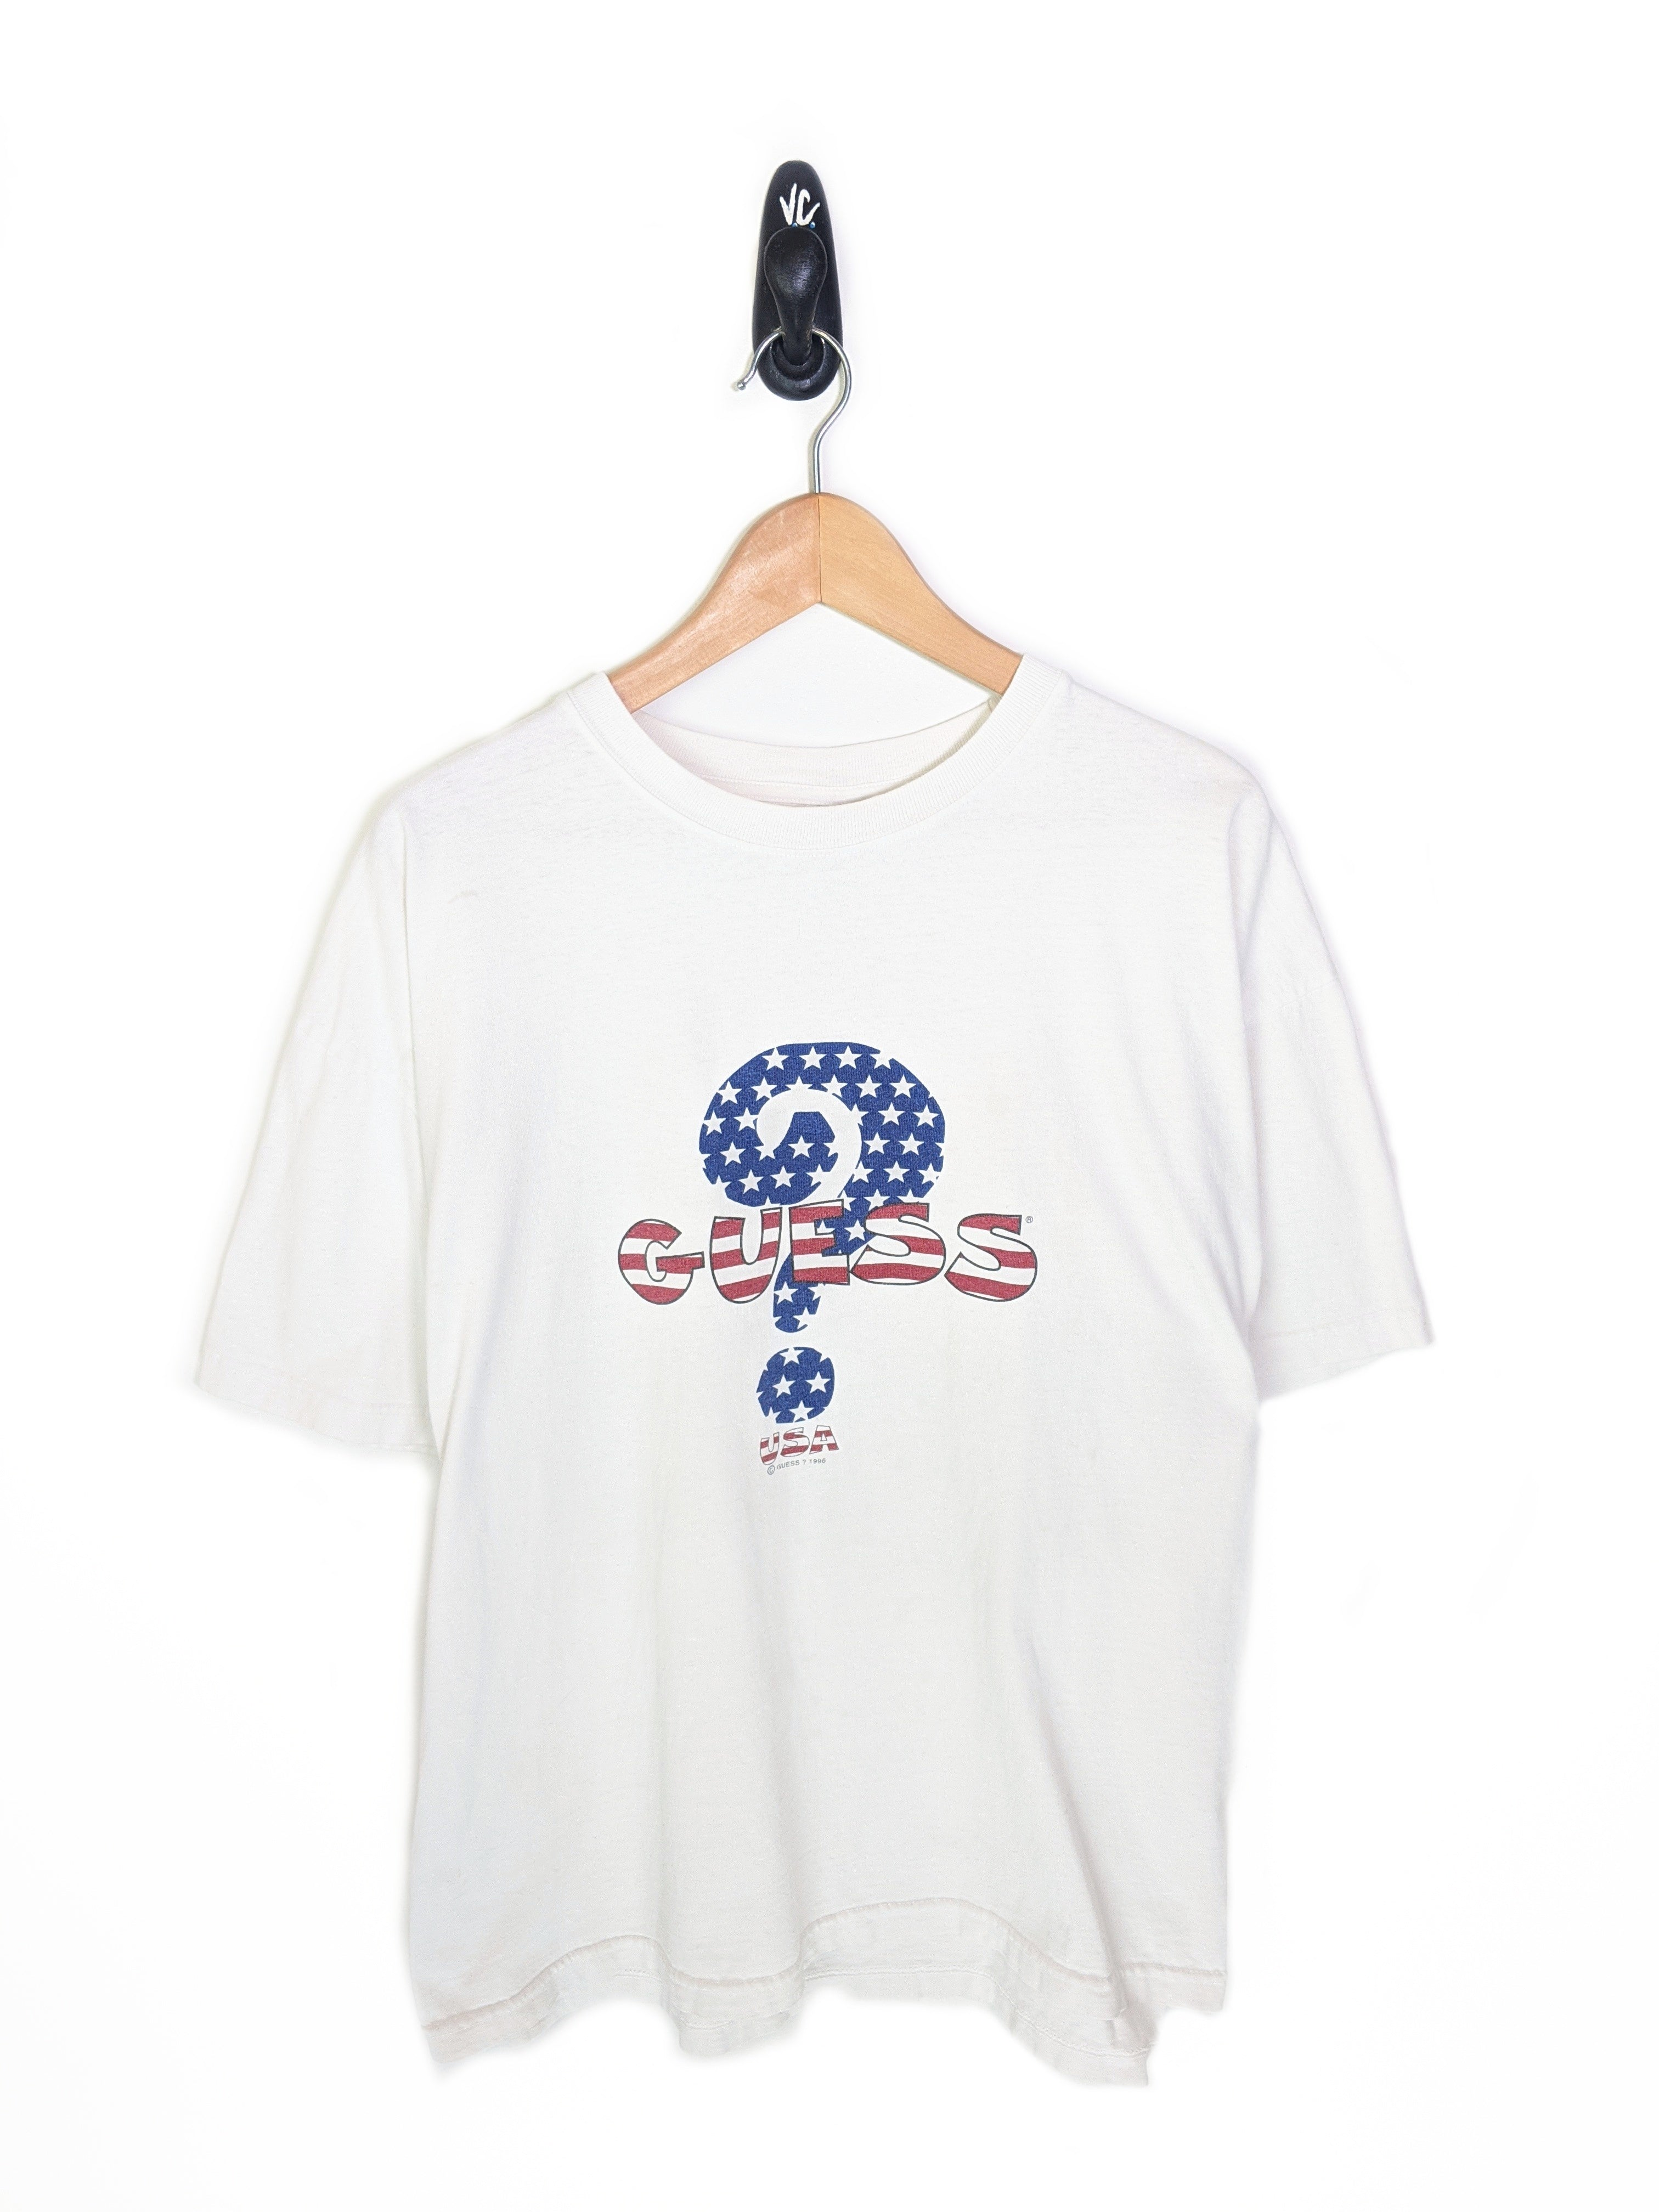 96 Guess America Tee (XXL)